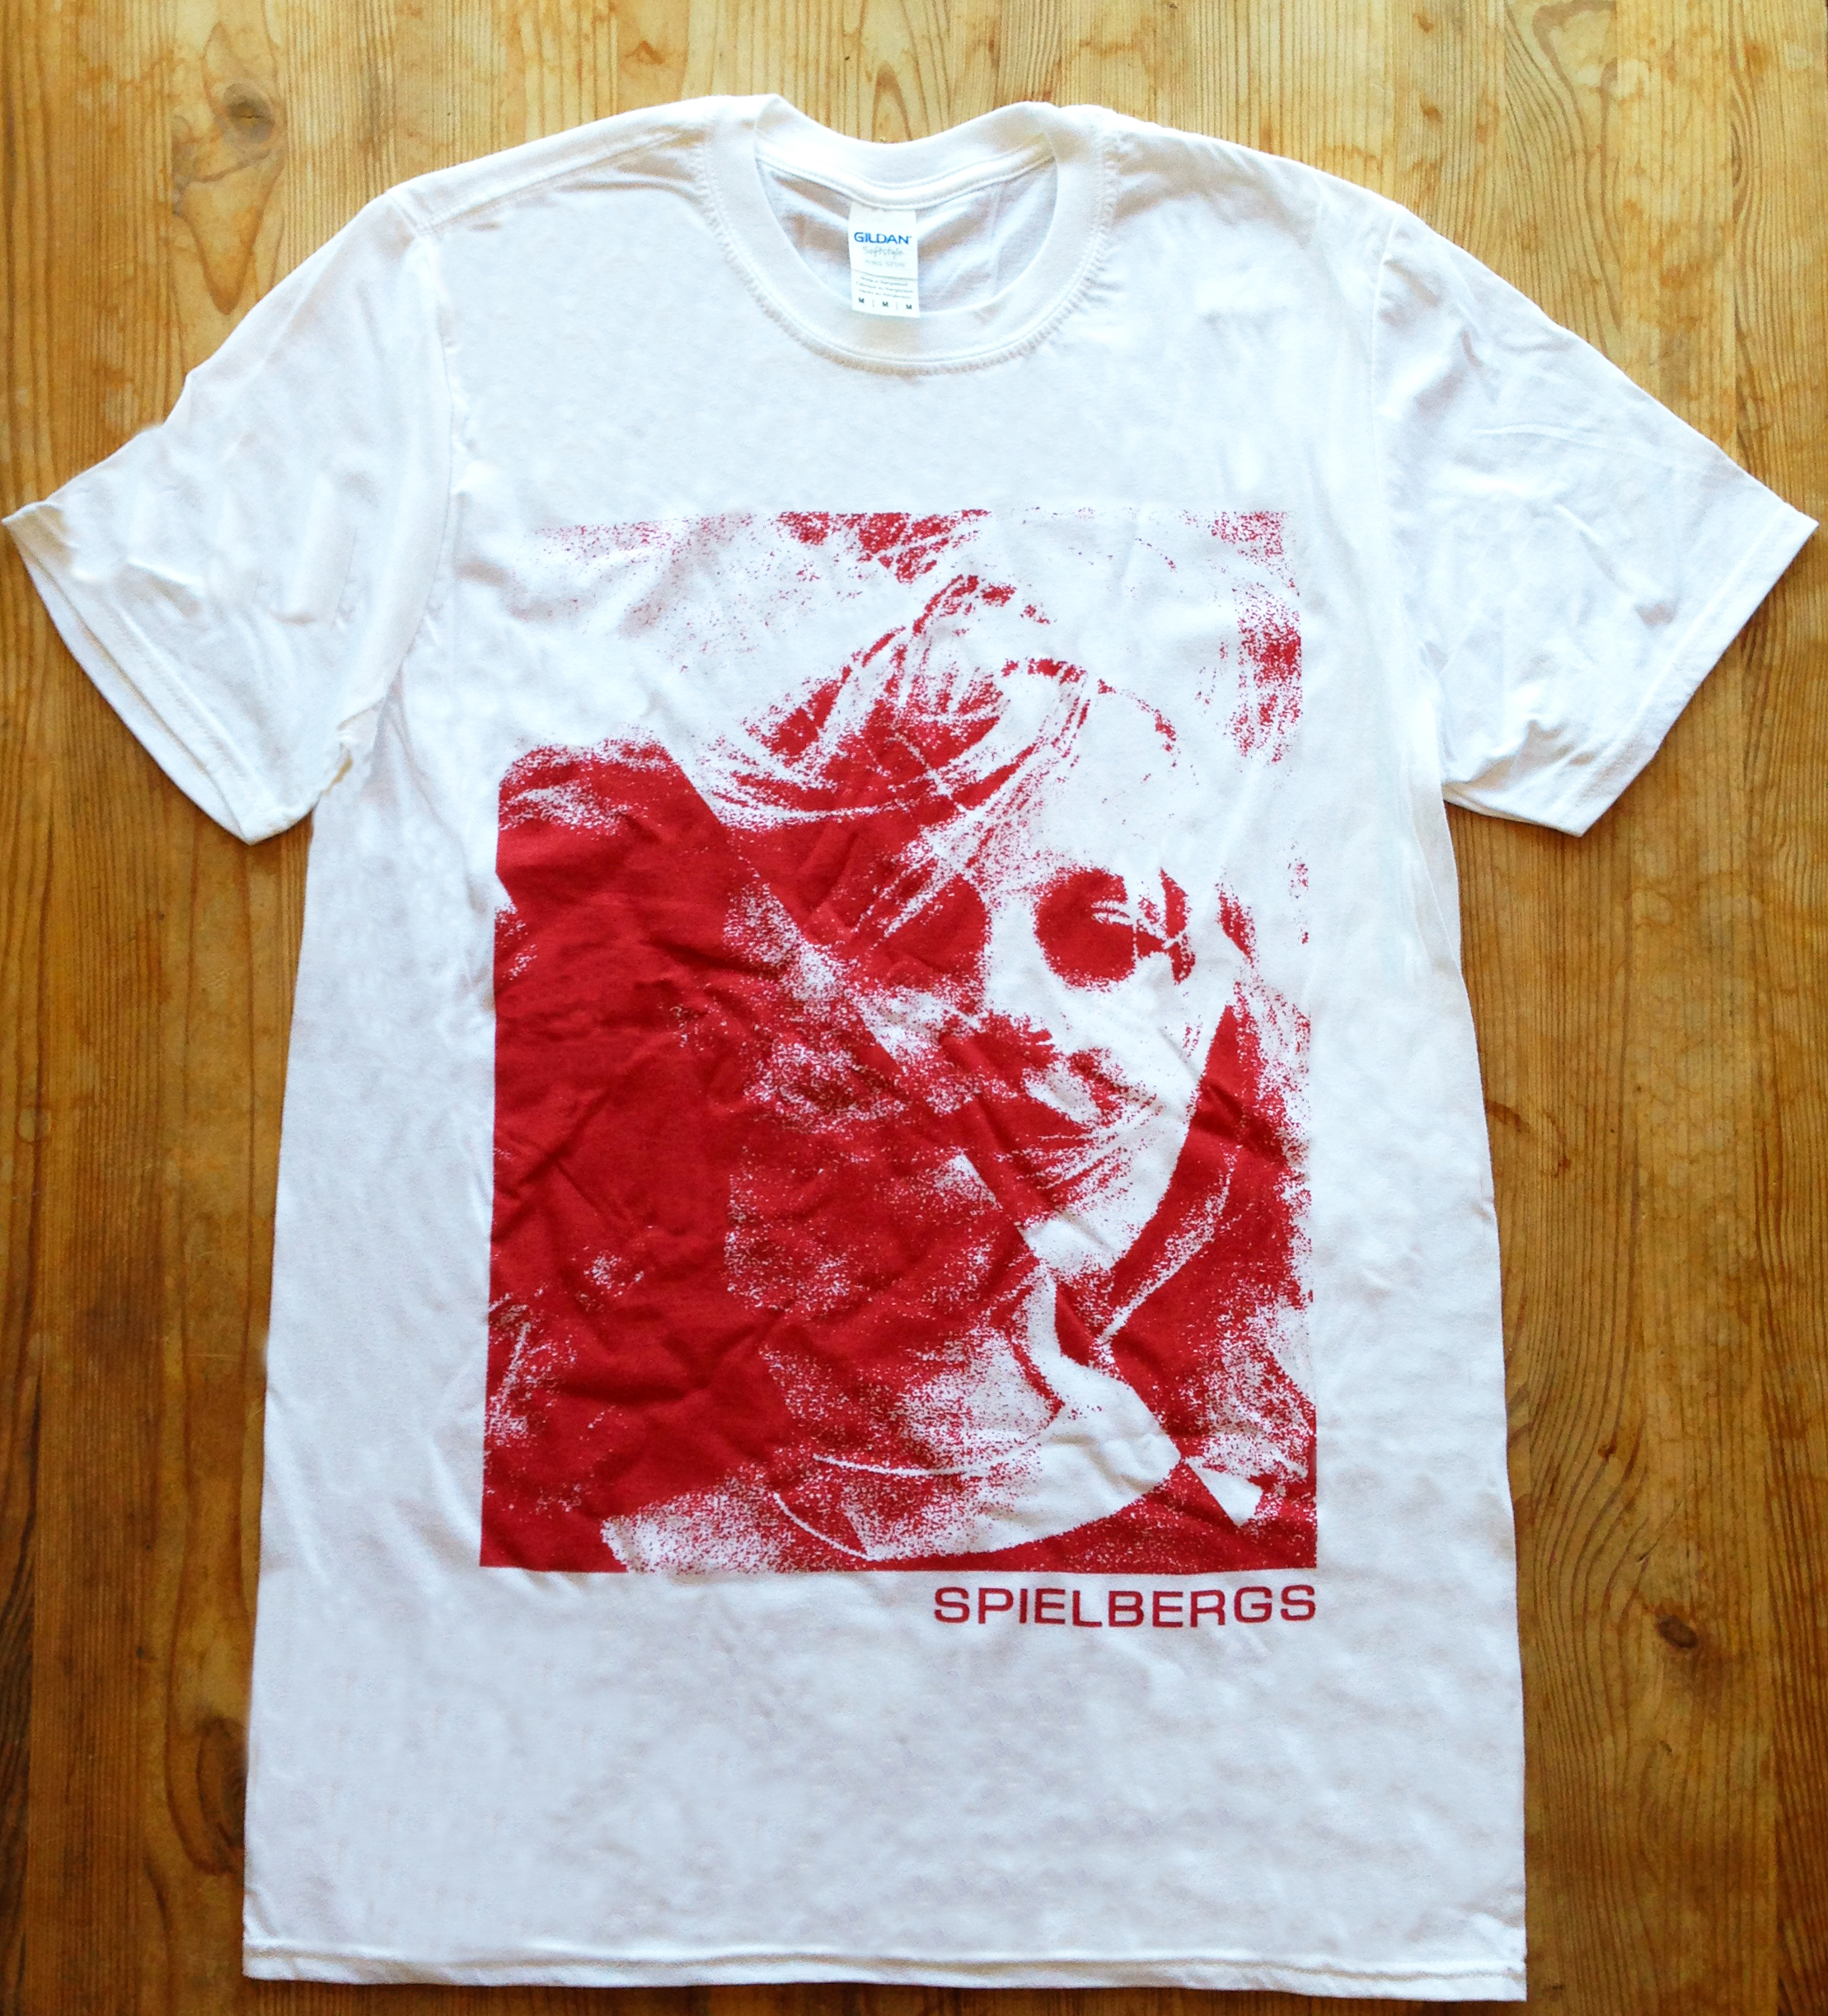 Spielbergs - T Shirt - By The Time It Gets Dark